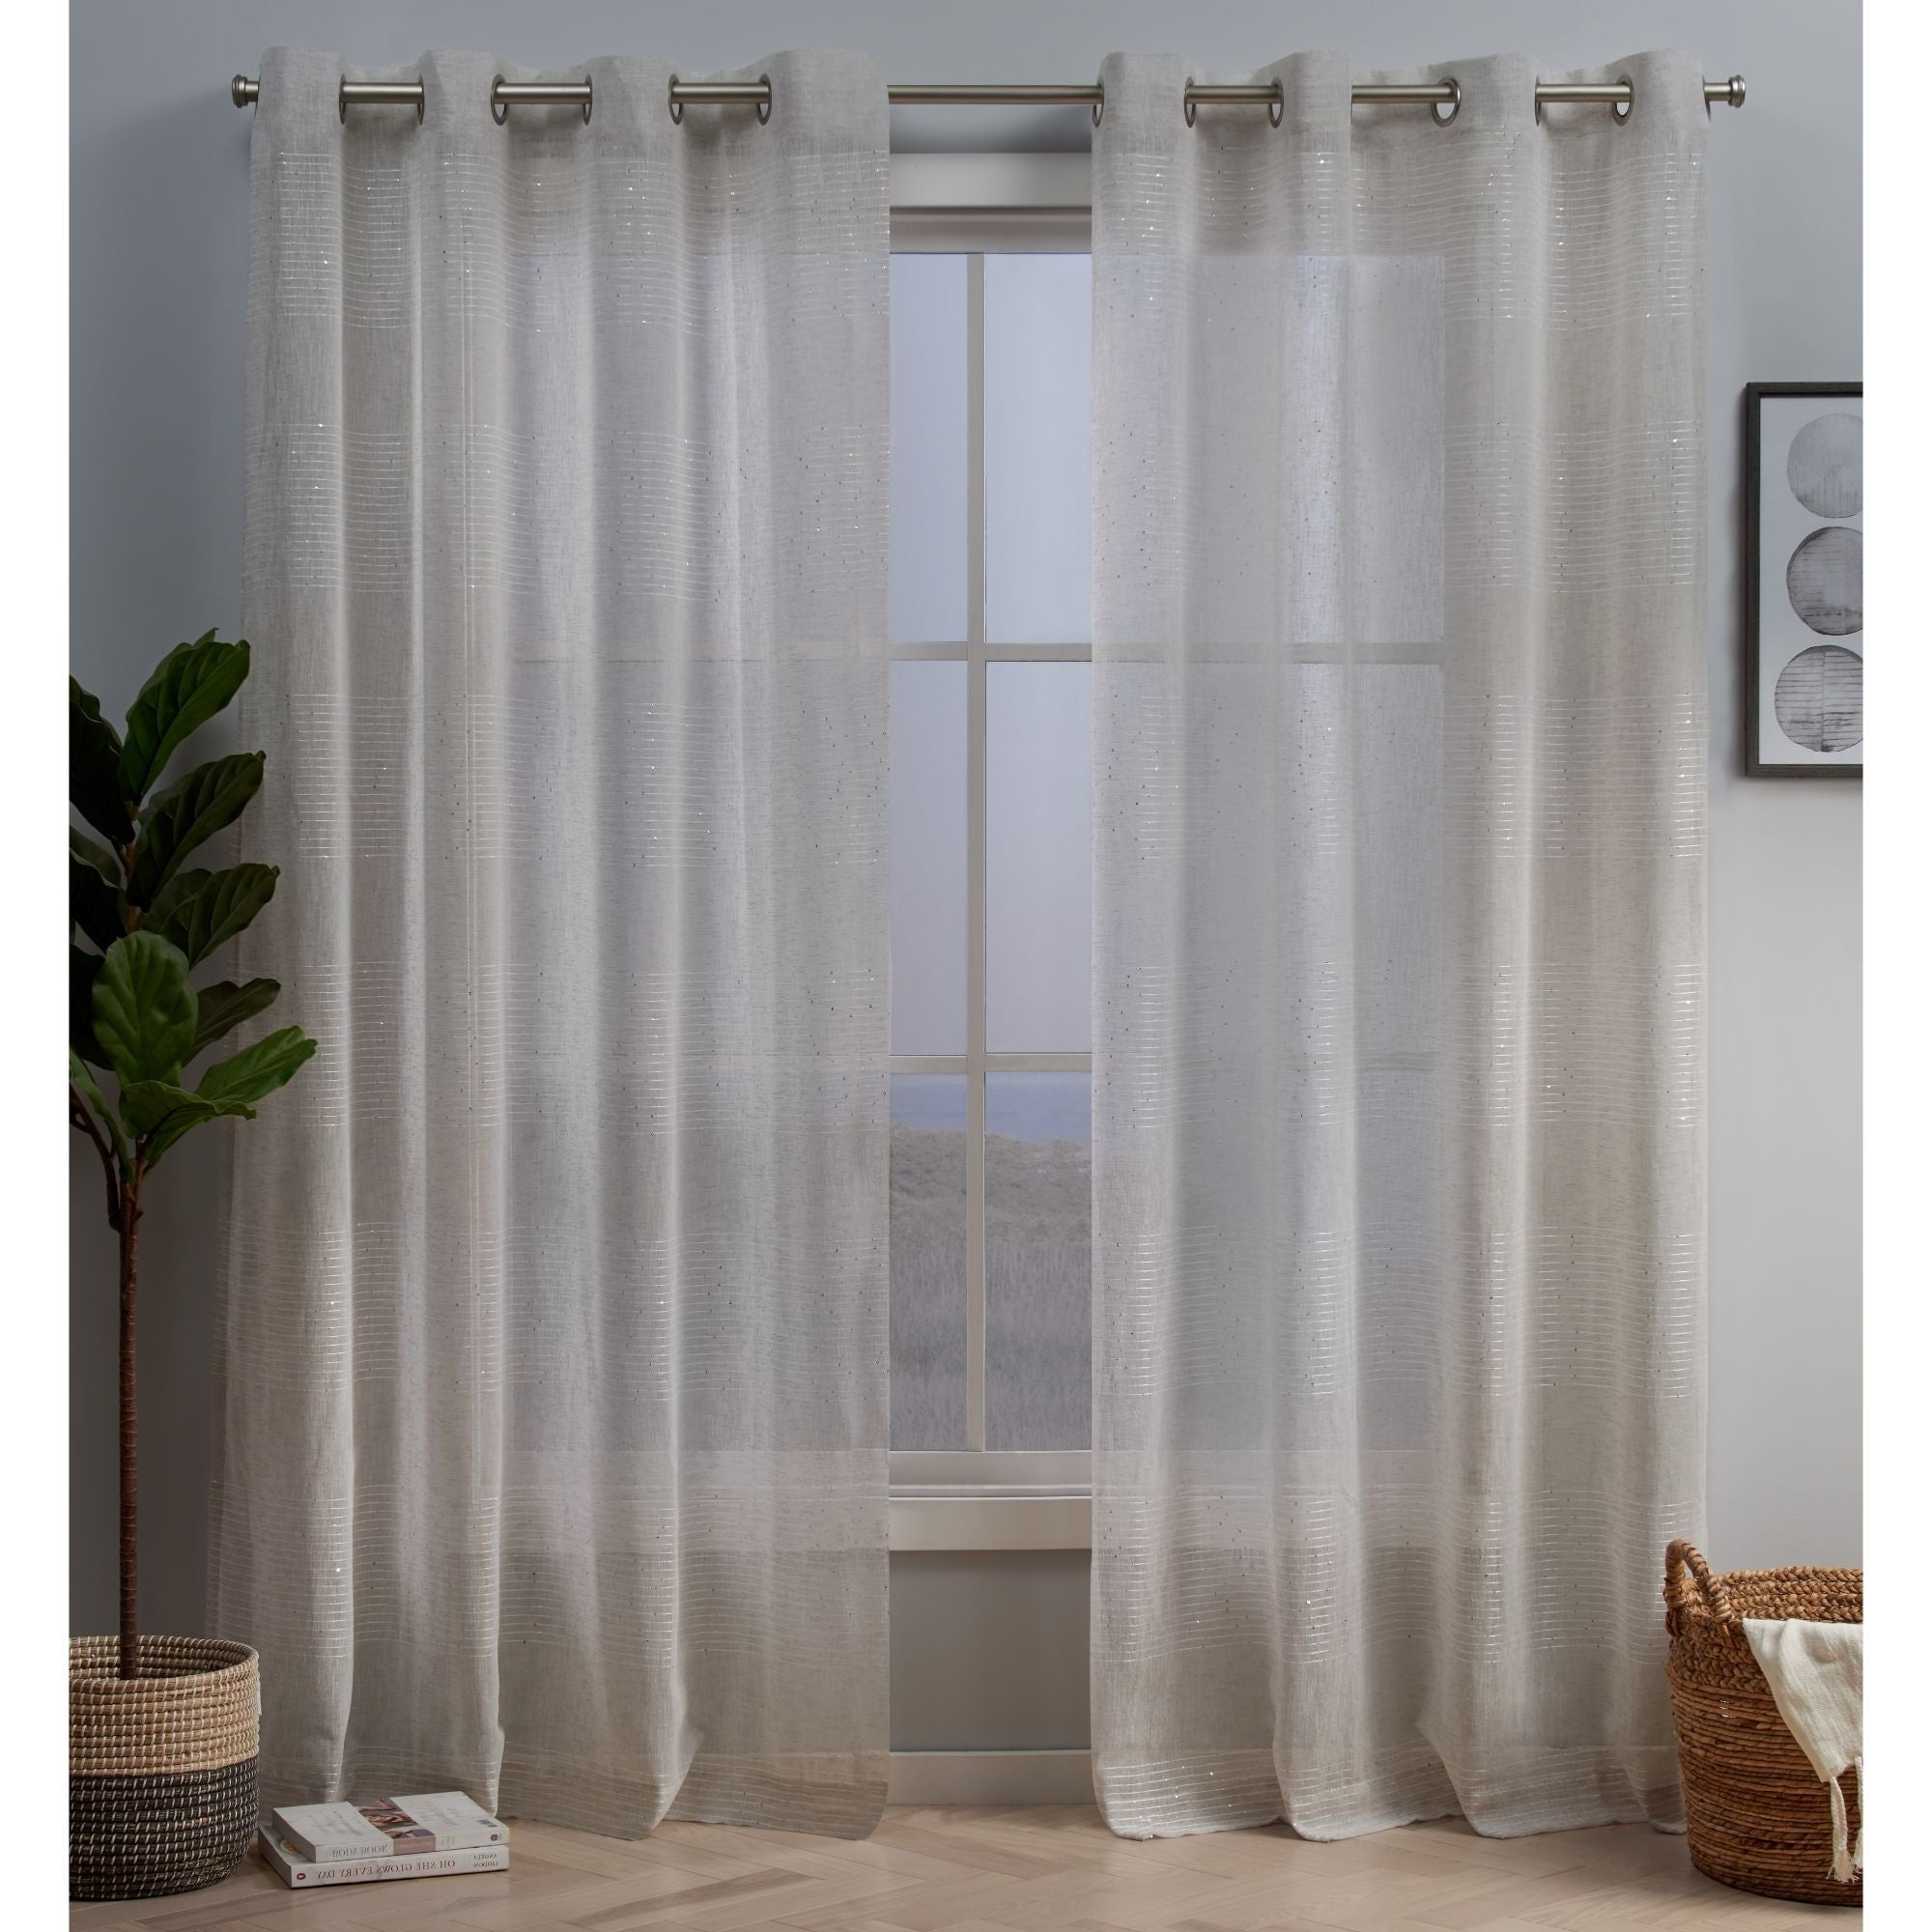 Silver Orchid Robey Embellished Sheer Grommet Top Curtain Panel Pair With Regard To Latest Penny Sheer Grommet Top Curtain Panel Pairs (View 2 of 20)